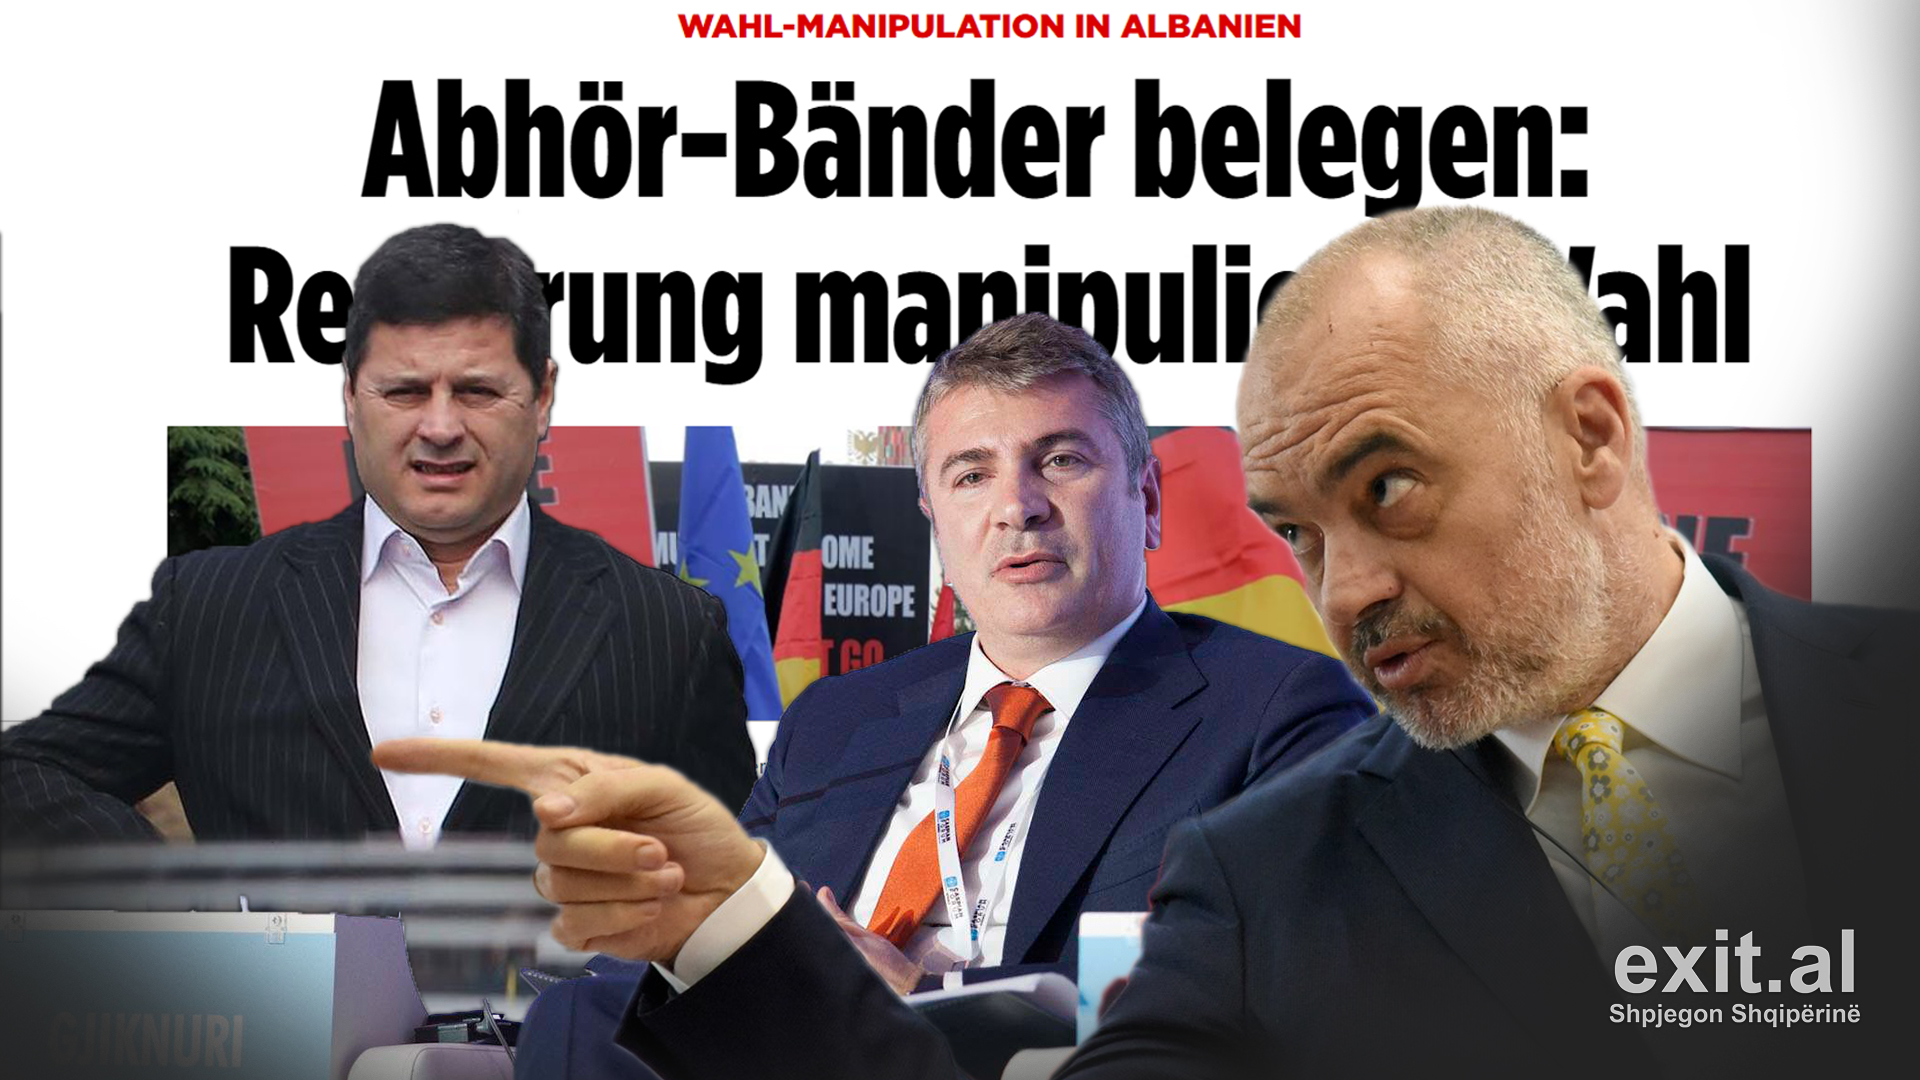 New Bild Wiretaps Implicate PM Rama in Vote Buying and Blackmail